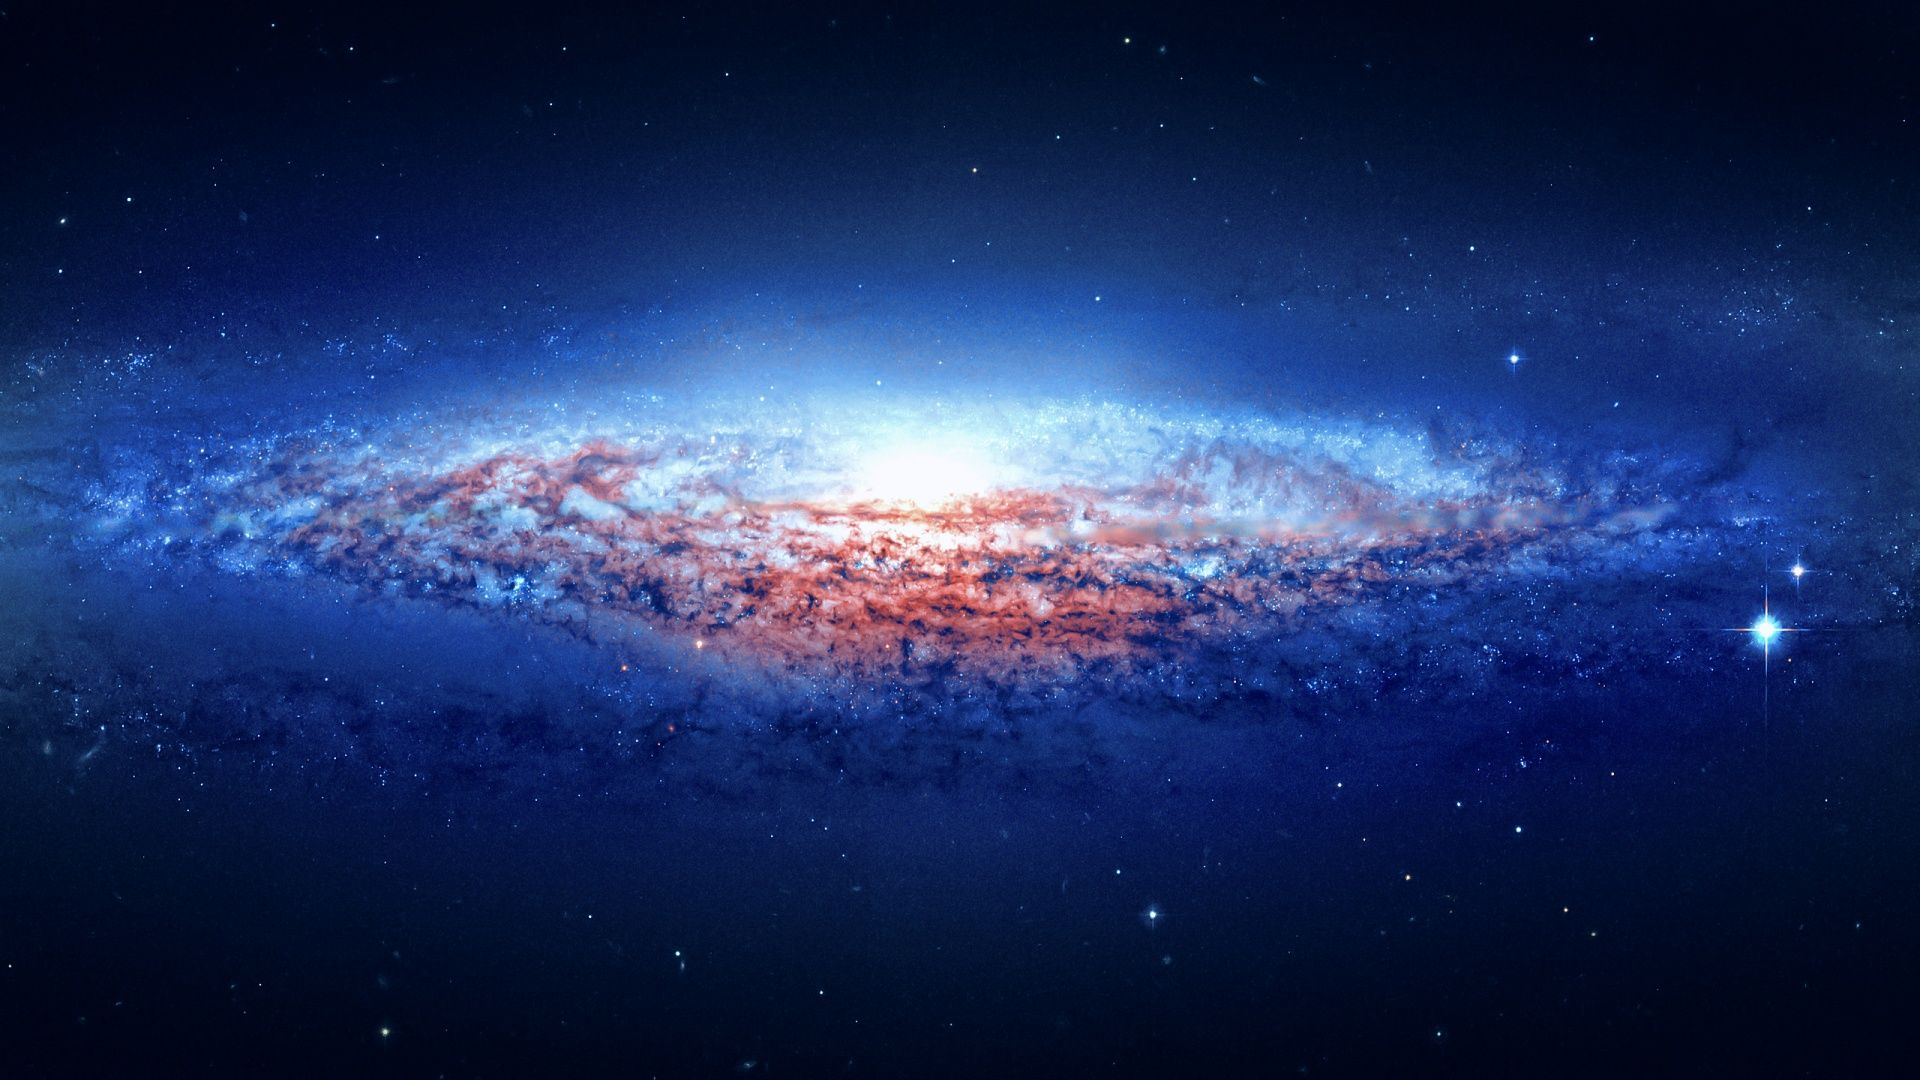 High Resolution Space Image wallpaper for laptop